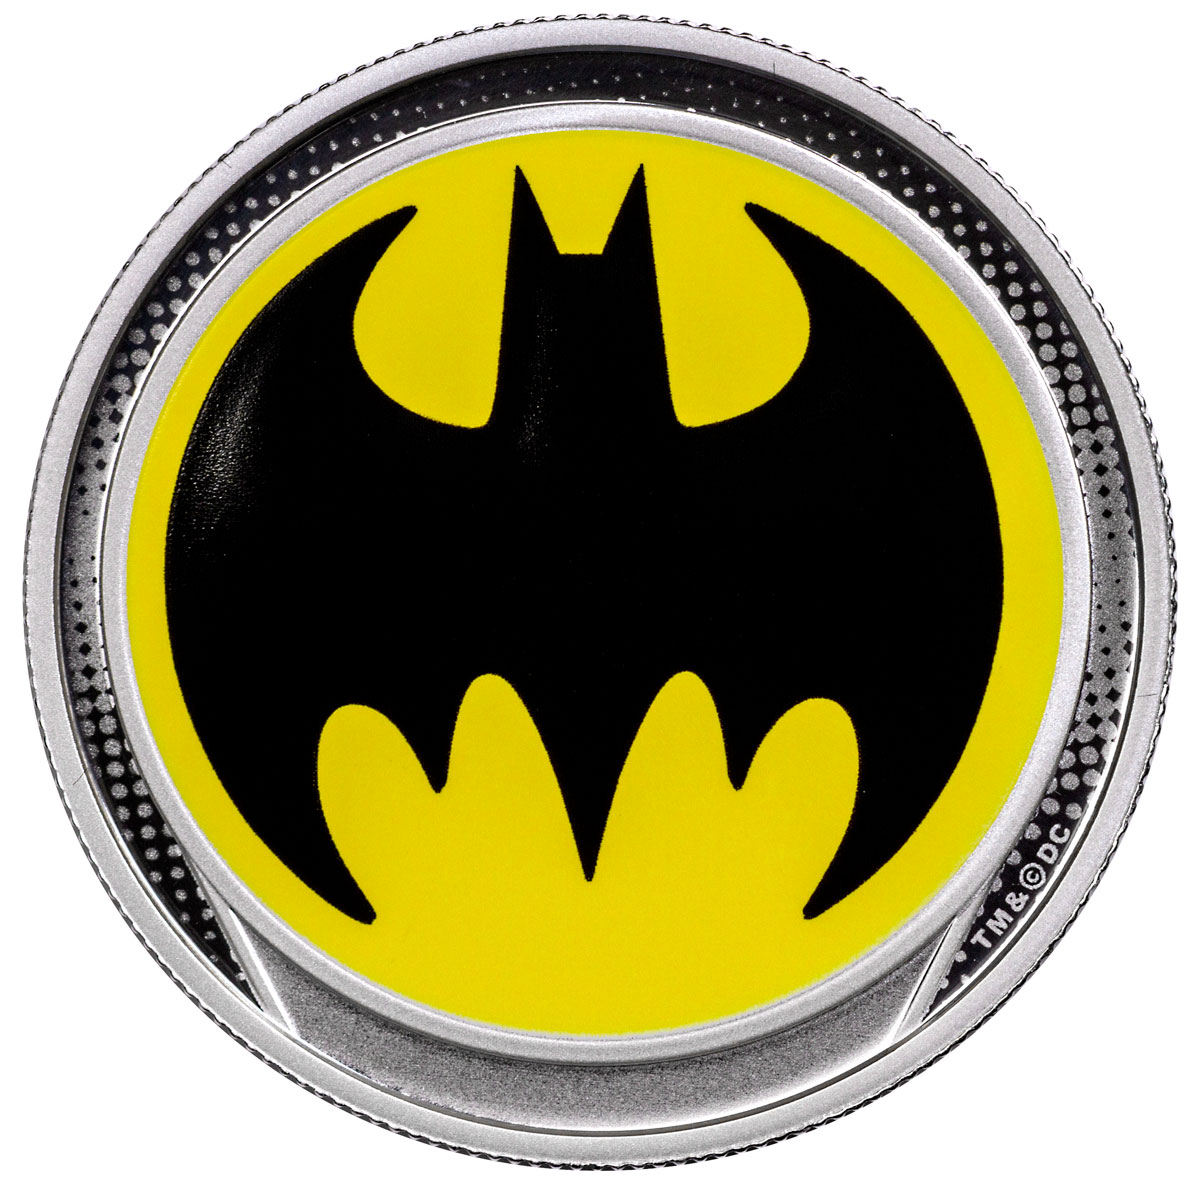 2019 Barbados Bat Signal Silver Glow in the Dark Colorized Proof $1 Coin GEM Proof OGP